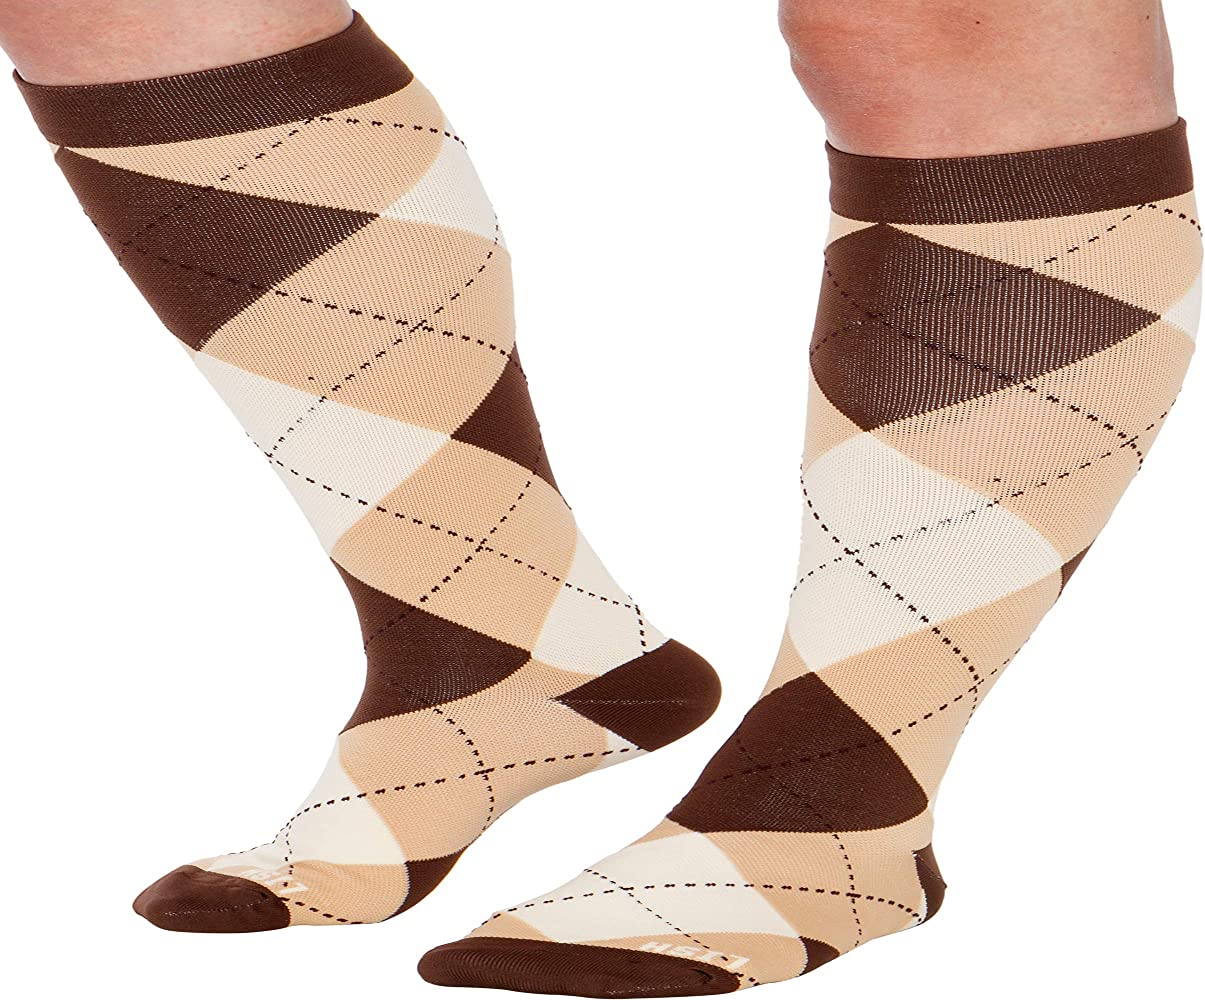 Wide Calf Compression Socks Graduated 15-25 mmHg Knee High Heart Love Pattern Plus Size Support Stockings